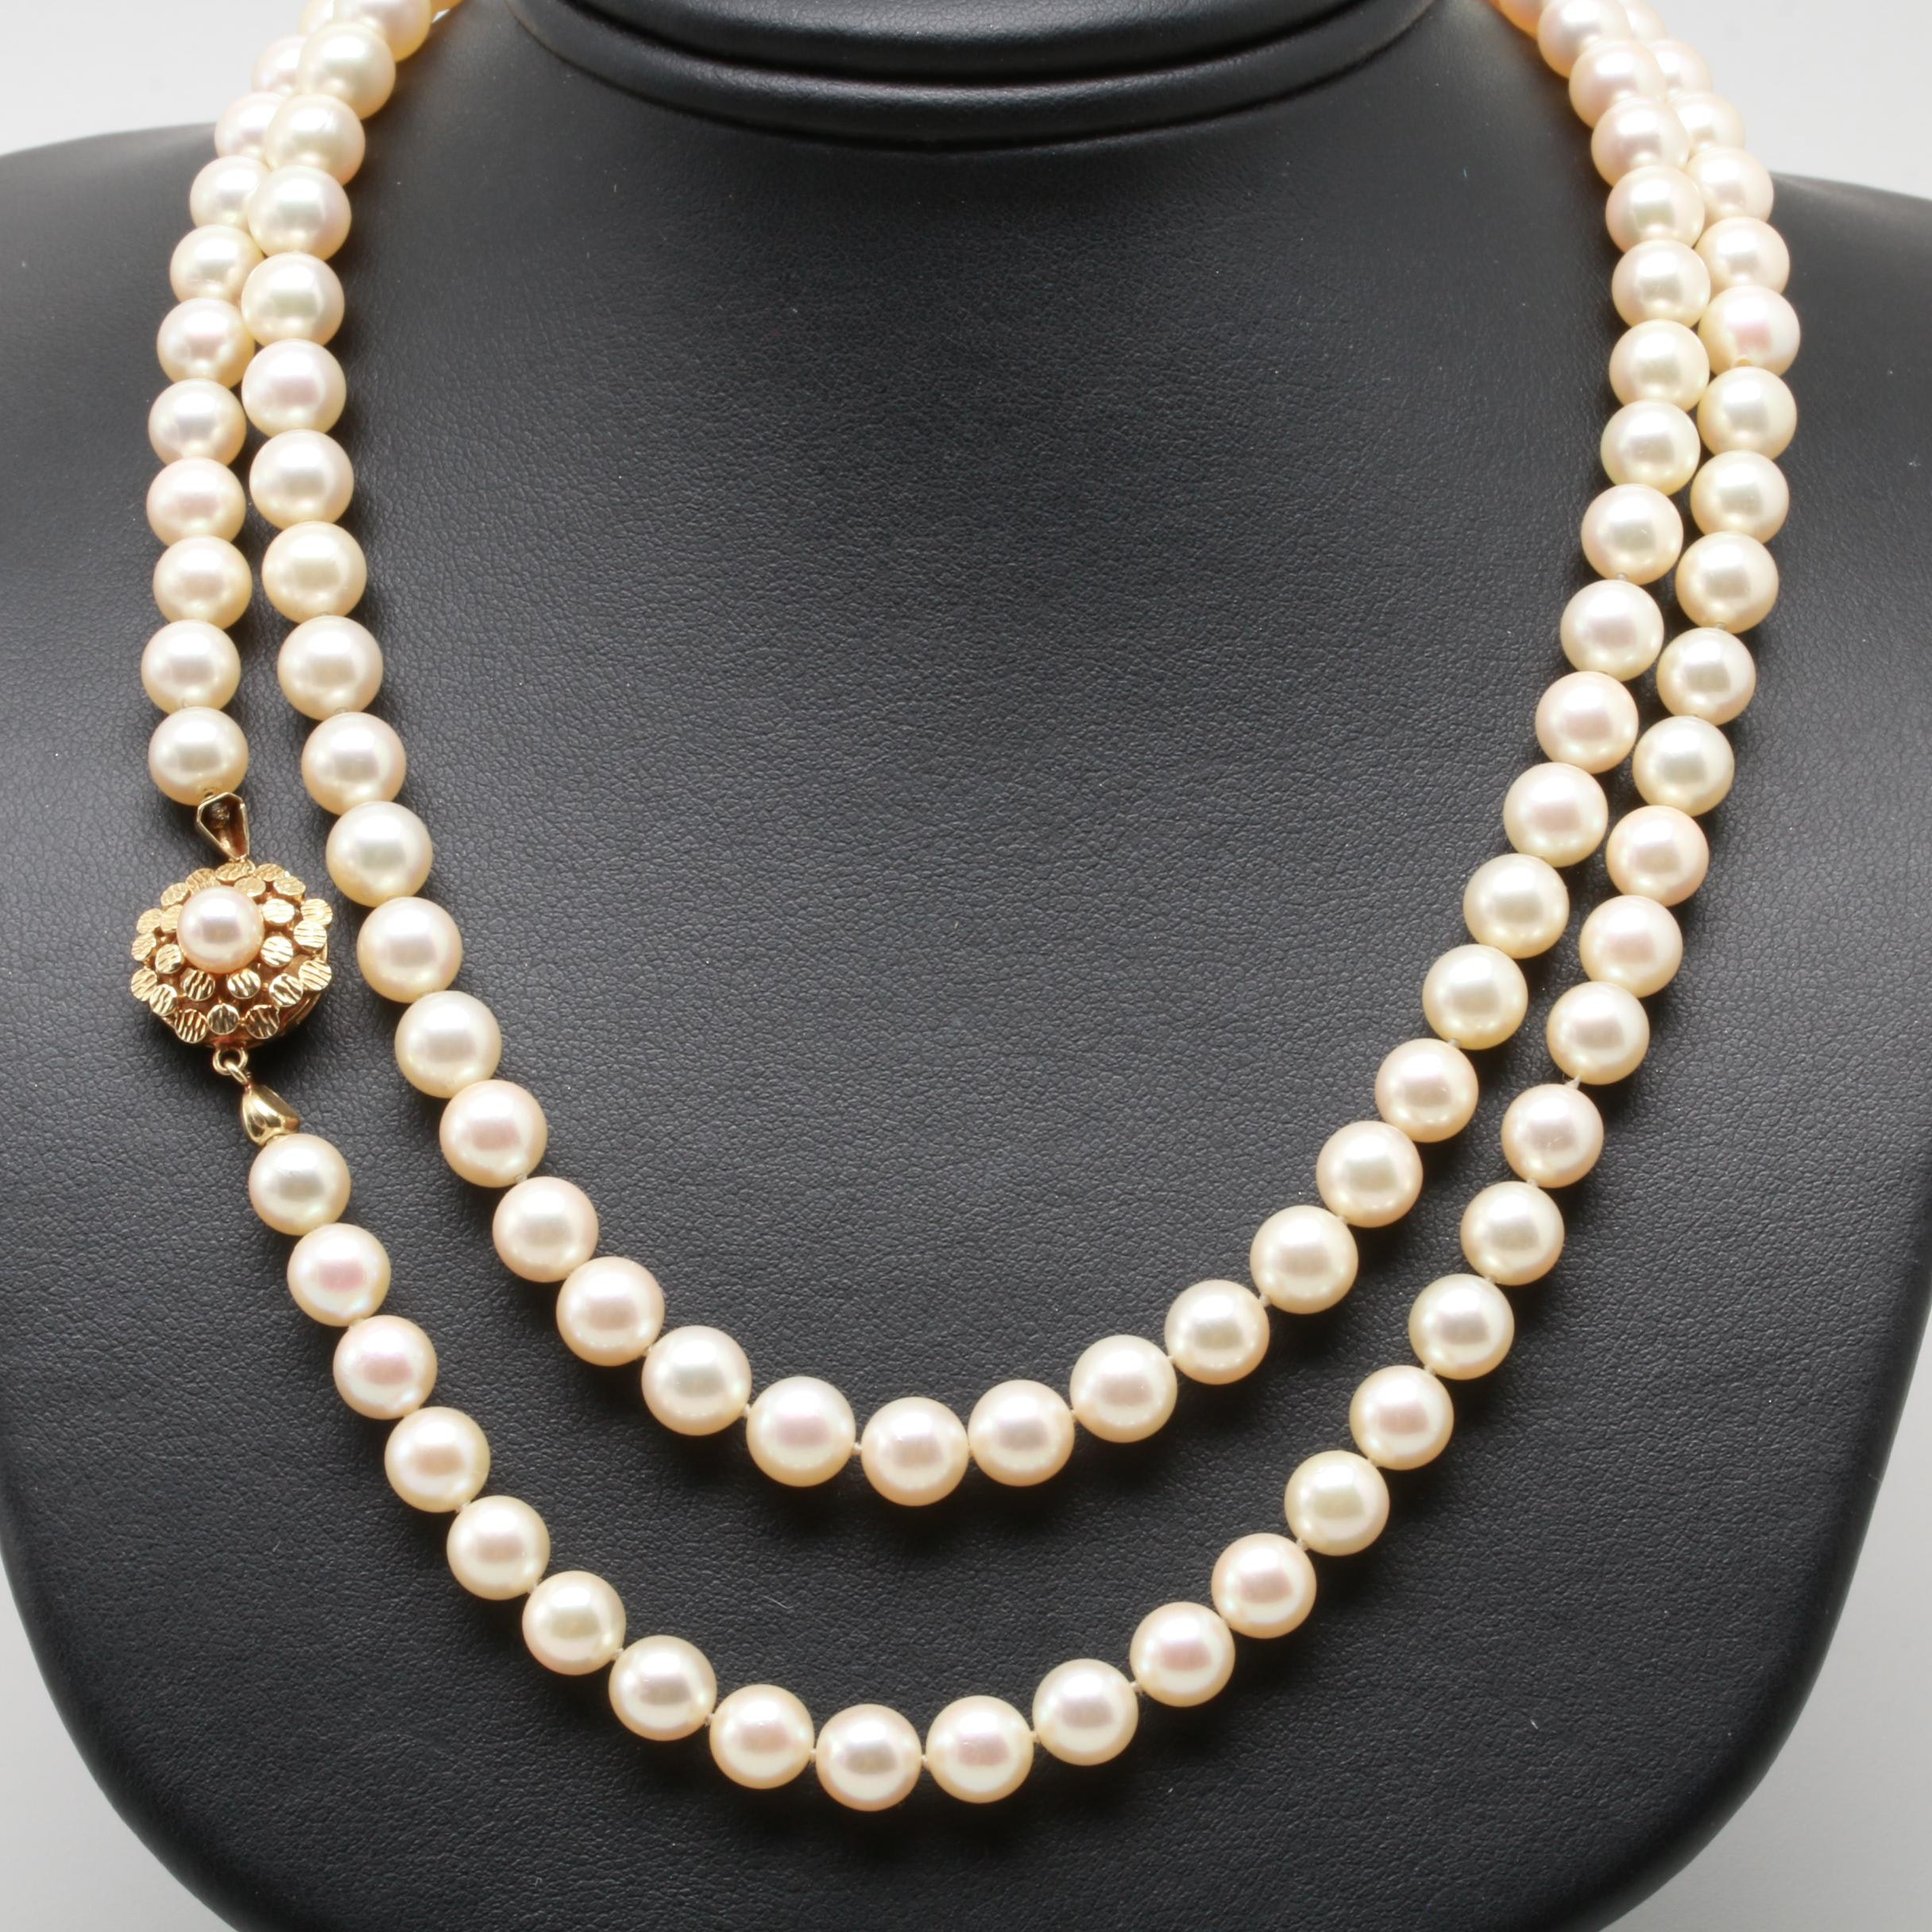 Mikimoto 14K Yellow Gold Cultured Pearl Necklace